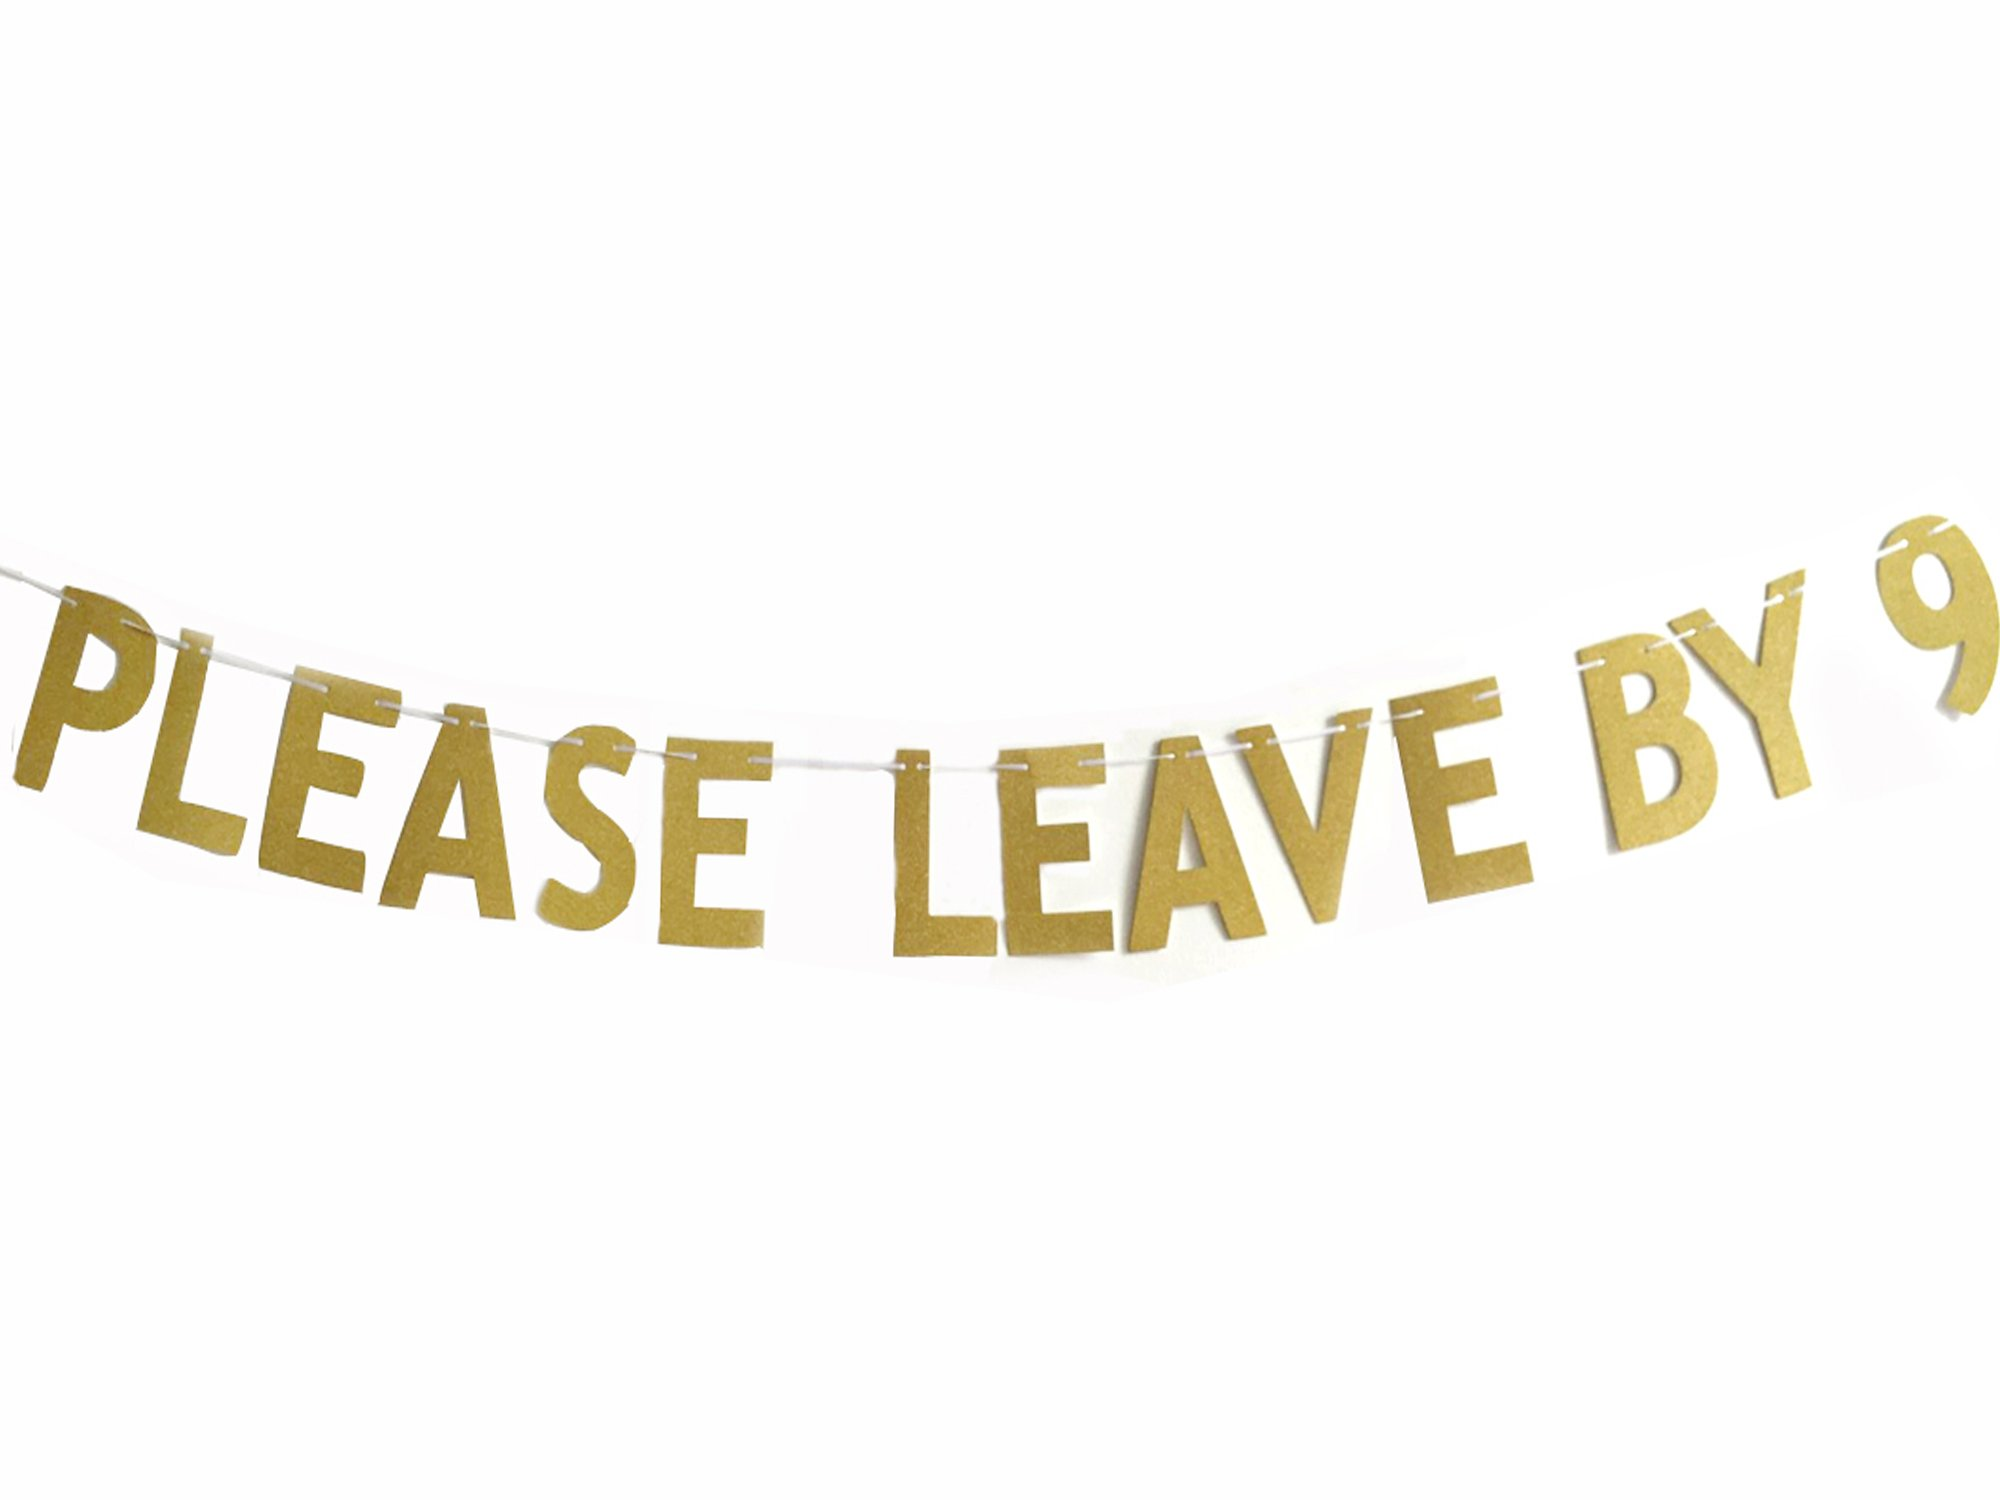 Please Leave By 9 Funny Rude Customize your Party Banner Signs Holiday Party Hanging Letter Sign by Glody